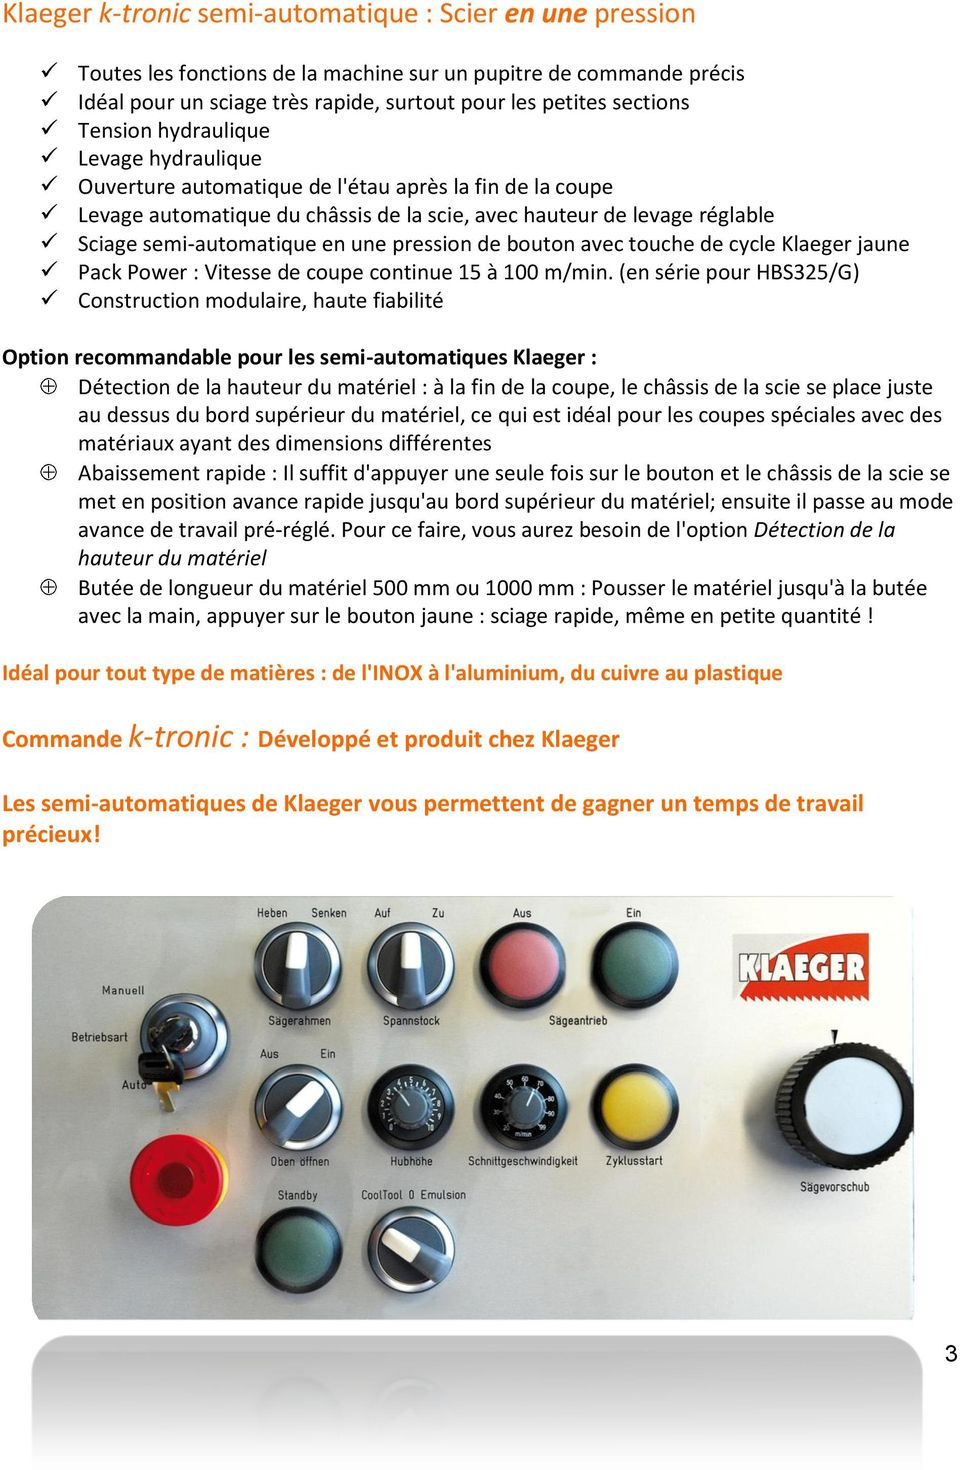 une pression de bouton avec touche de cycle Klaeger jaune Pack Power : Vitesse de coupe continue 15 à 100 m/min.